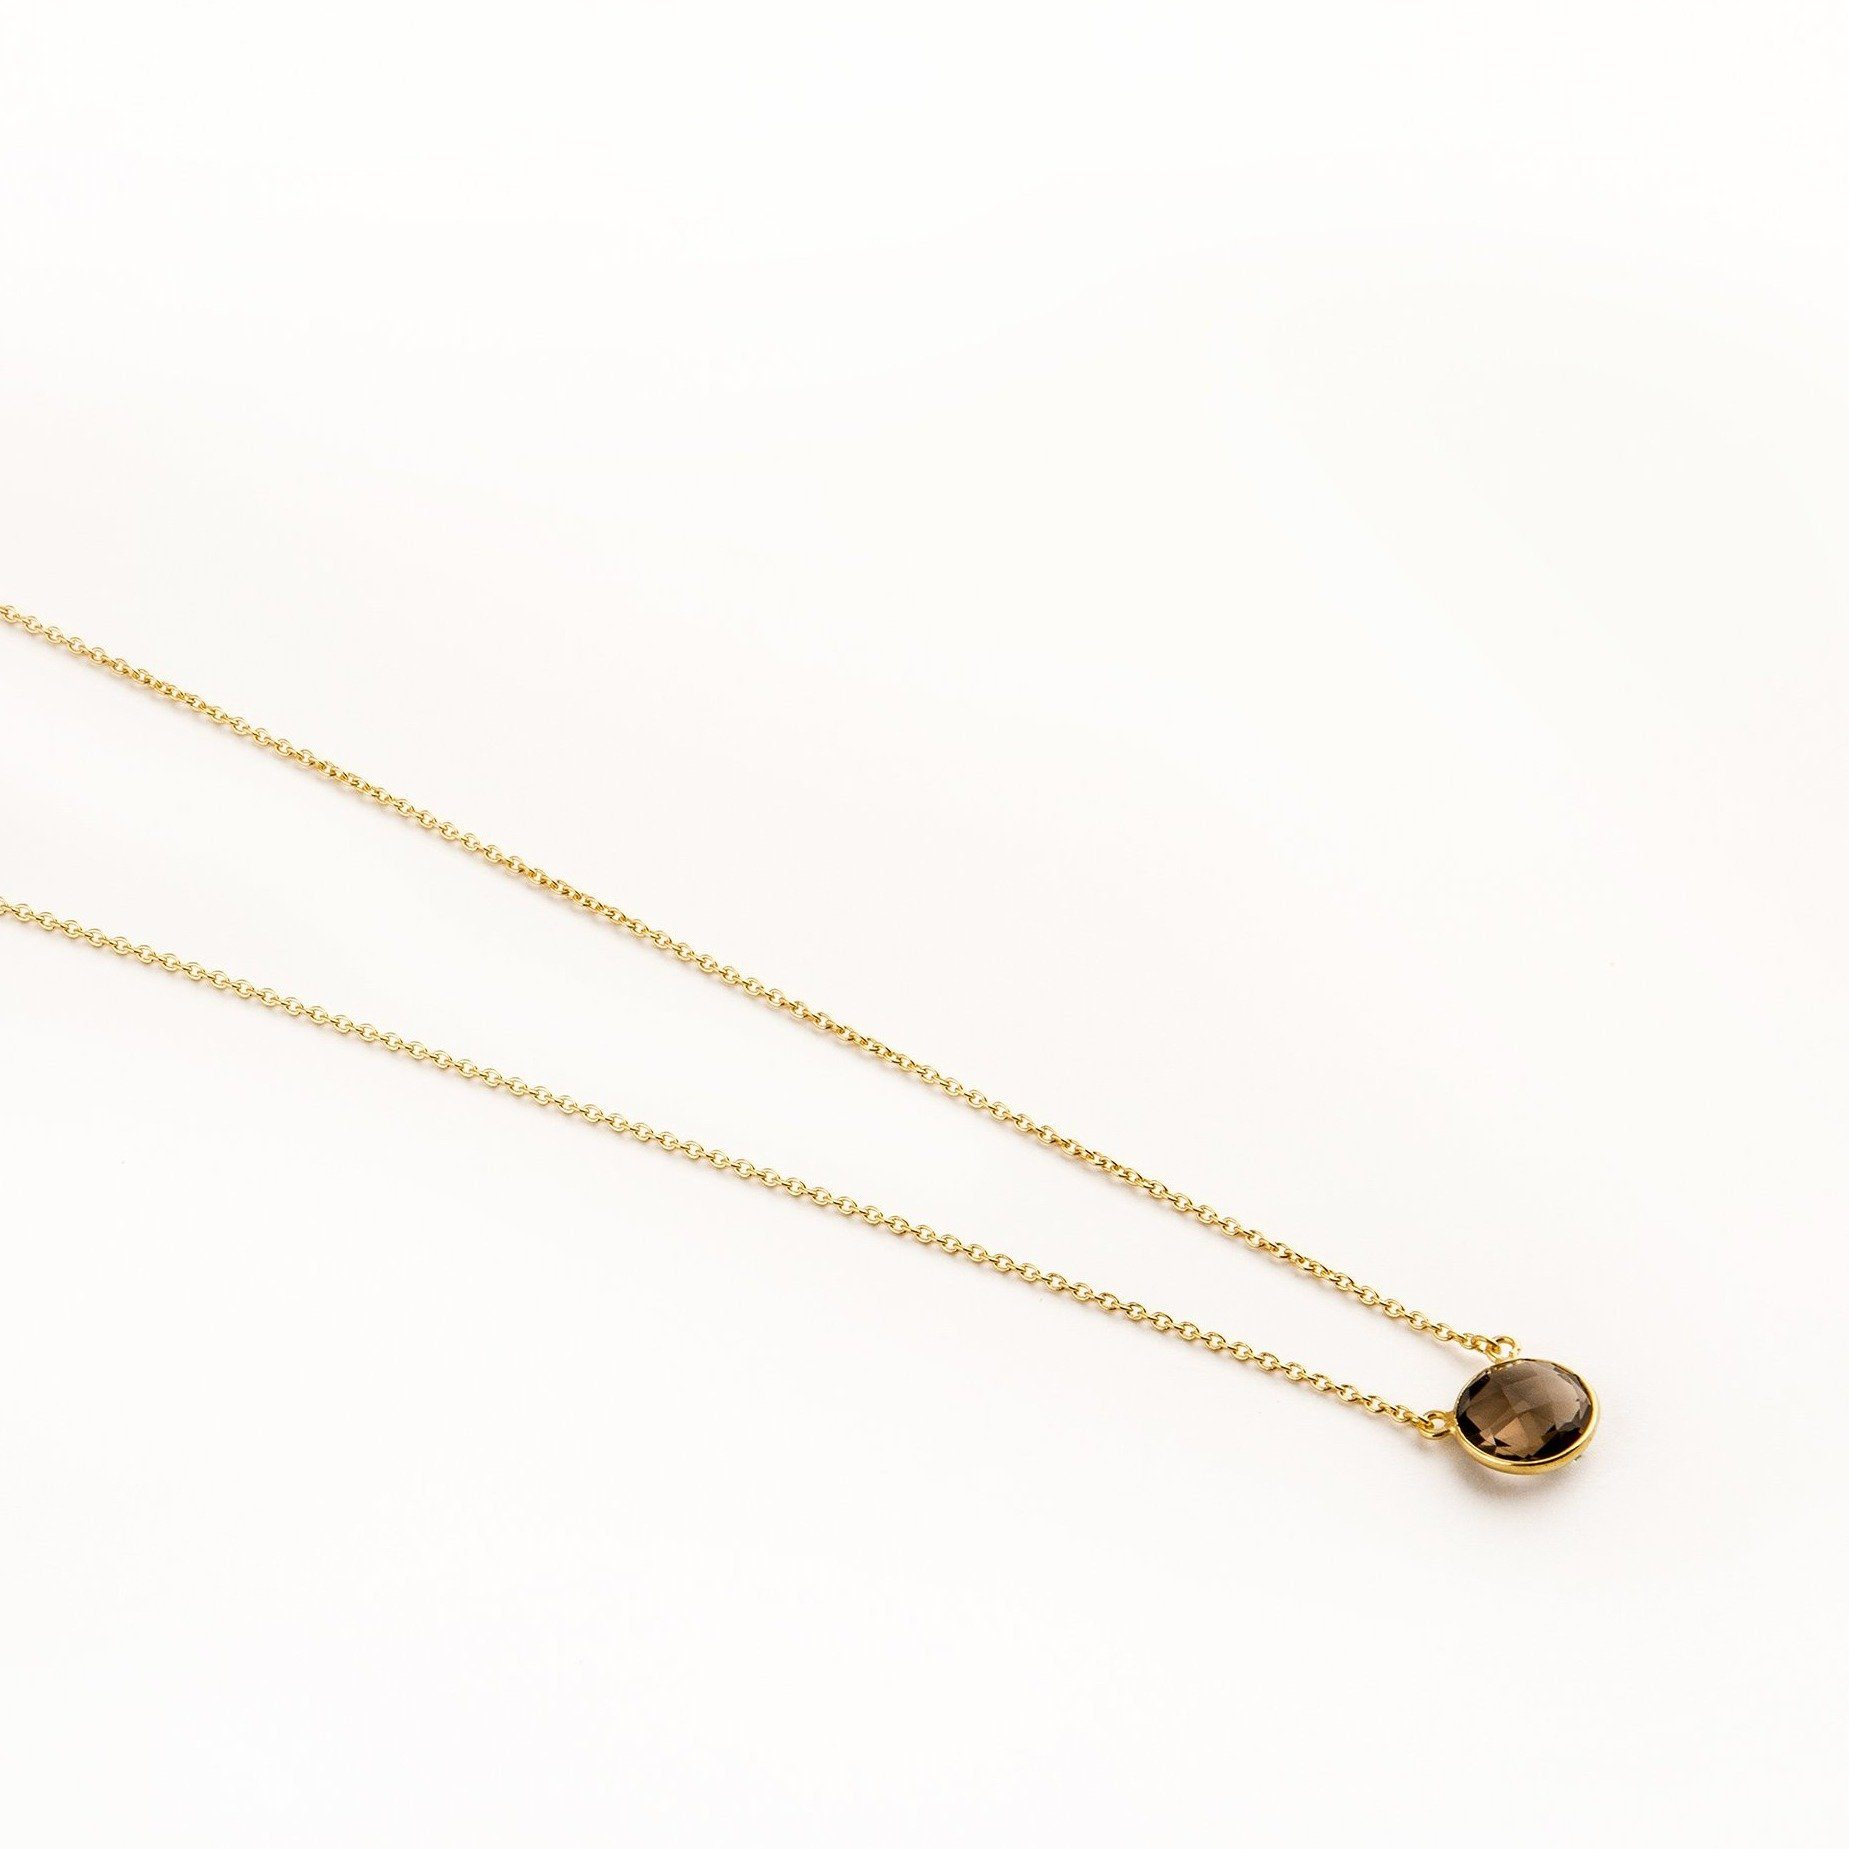 Adele gold-plated silver round chain in smoky topaz - Neckpieces